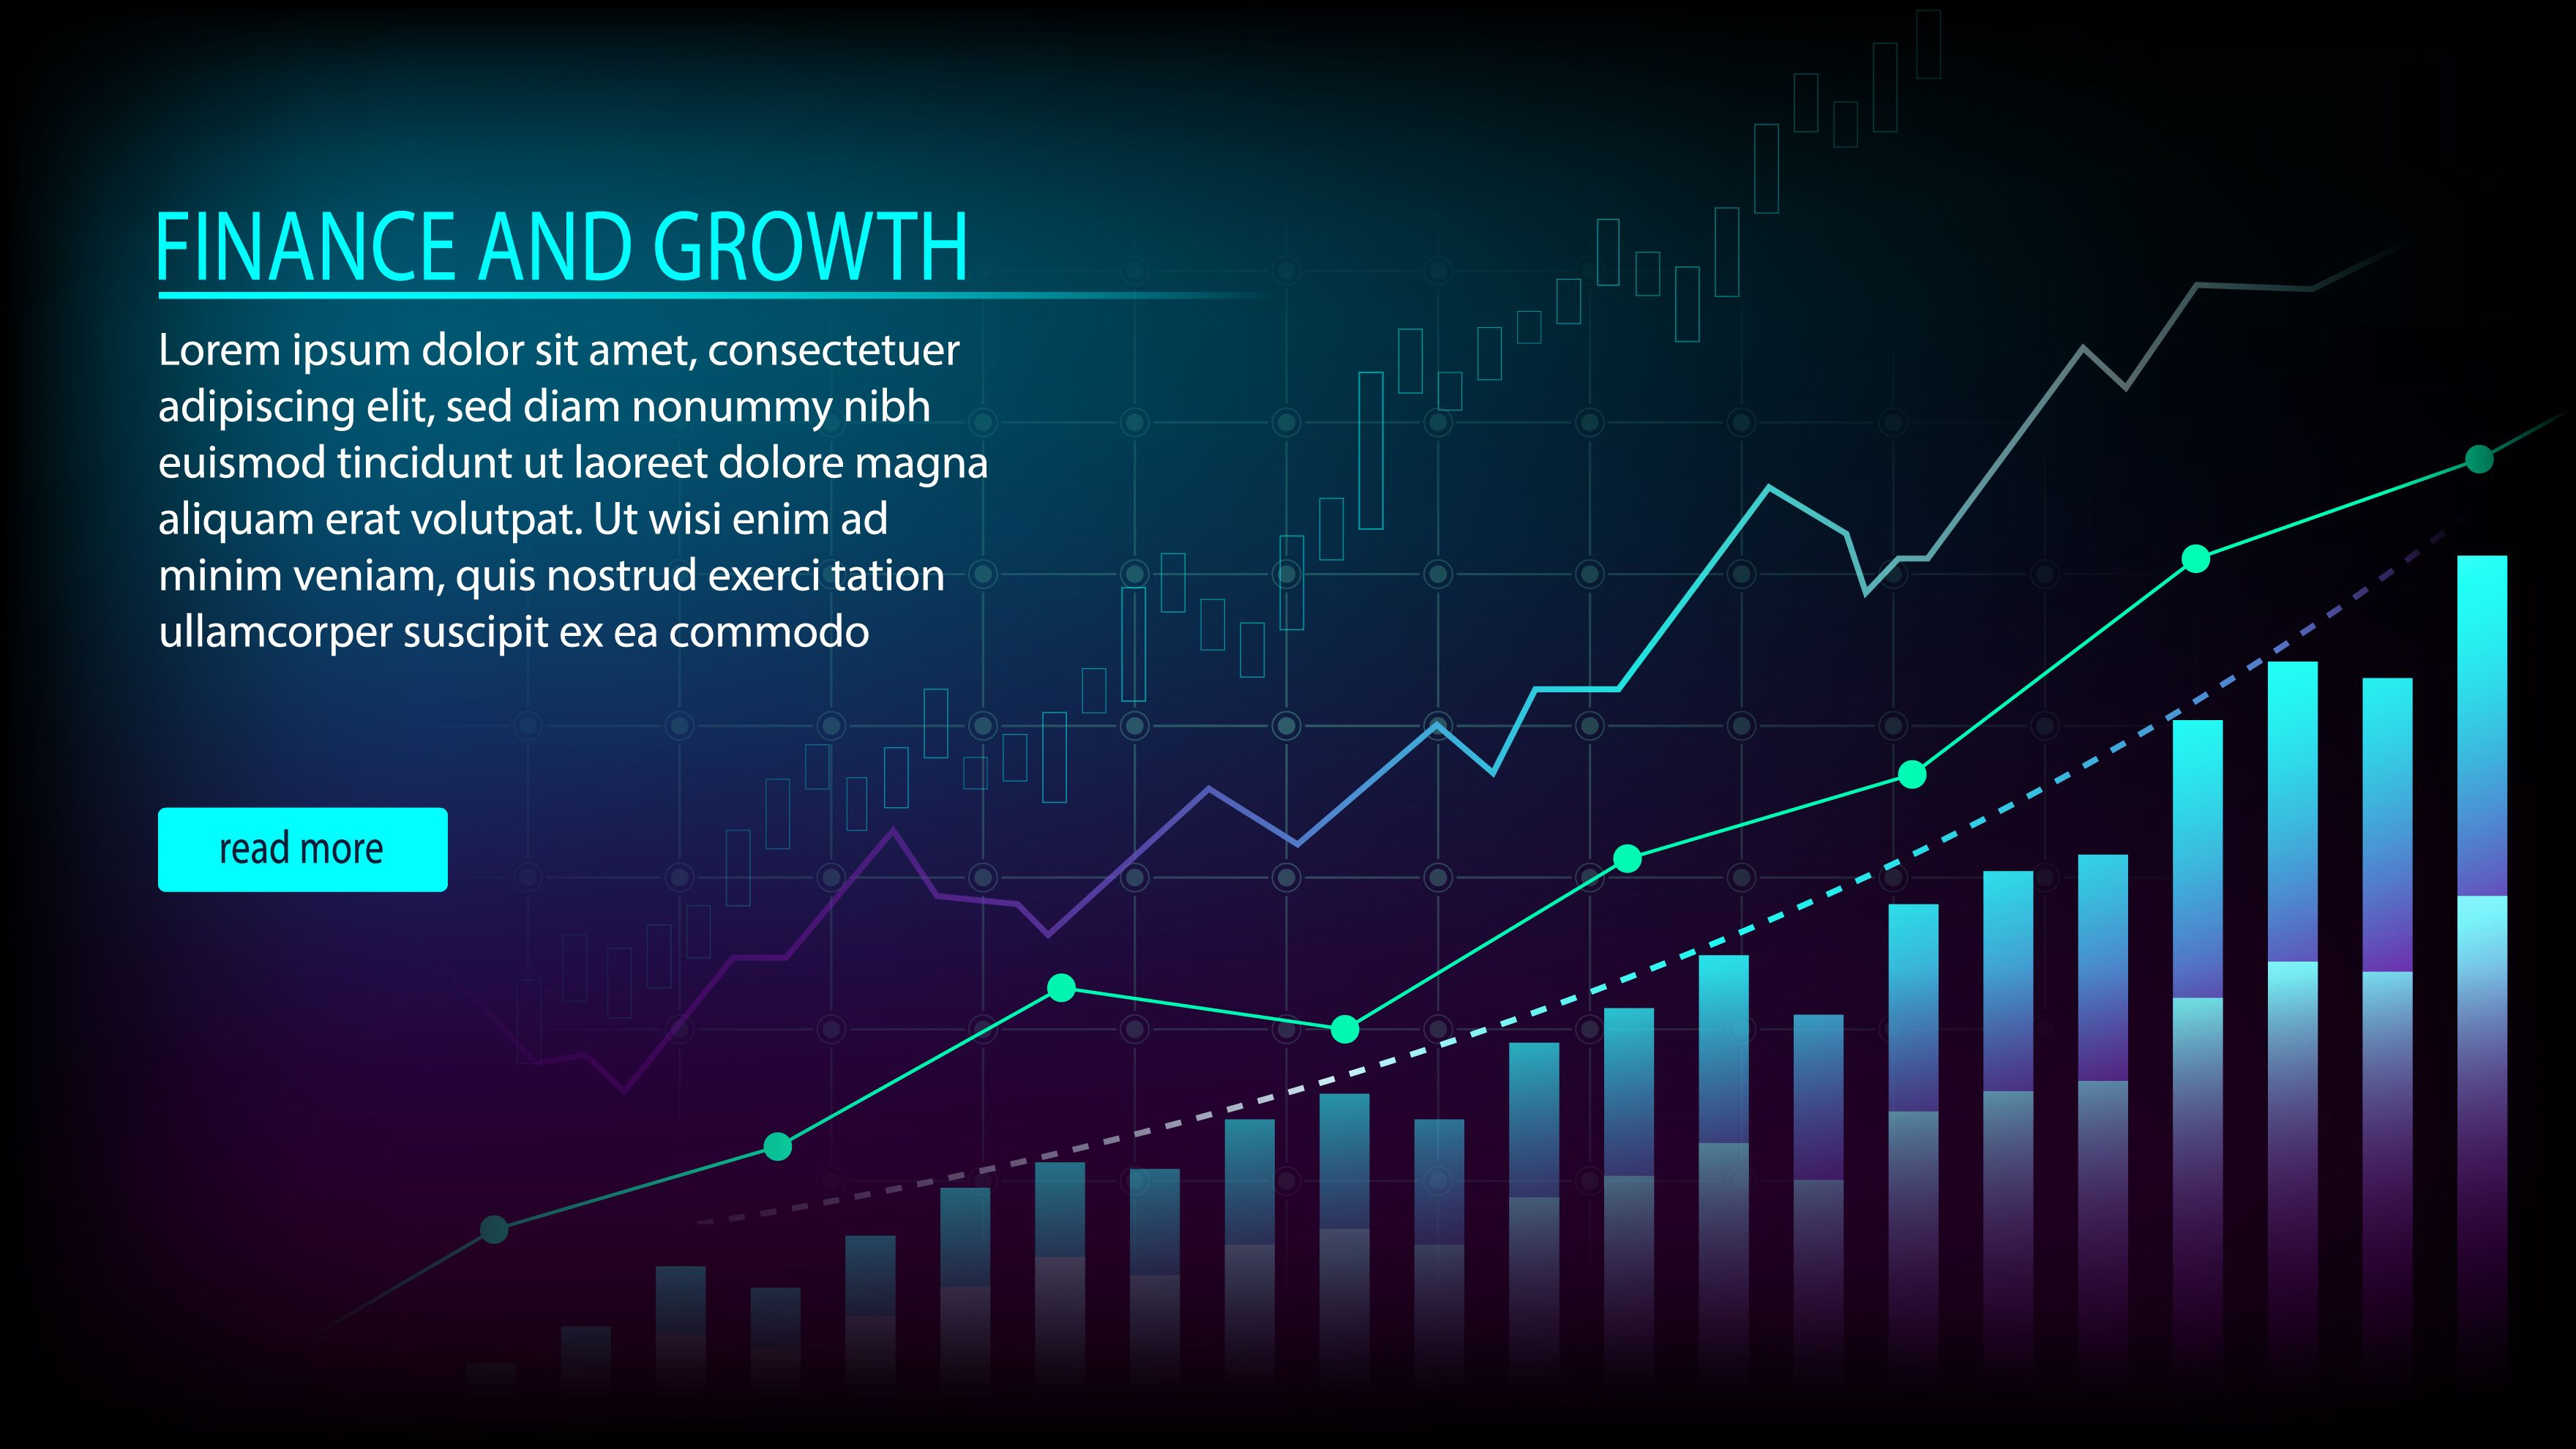 Financial Investment Growth With Indicators And Sample Head Text Vector Illustration In 2020 Financial Management Investing Stock Market Graph